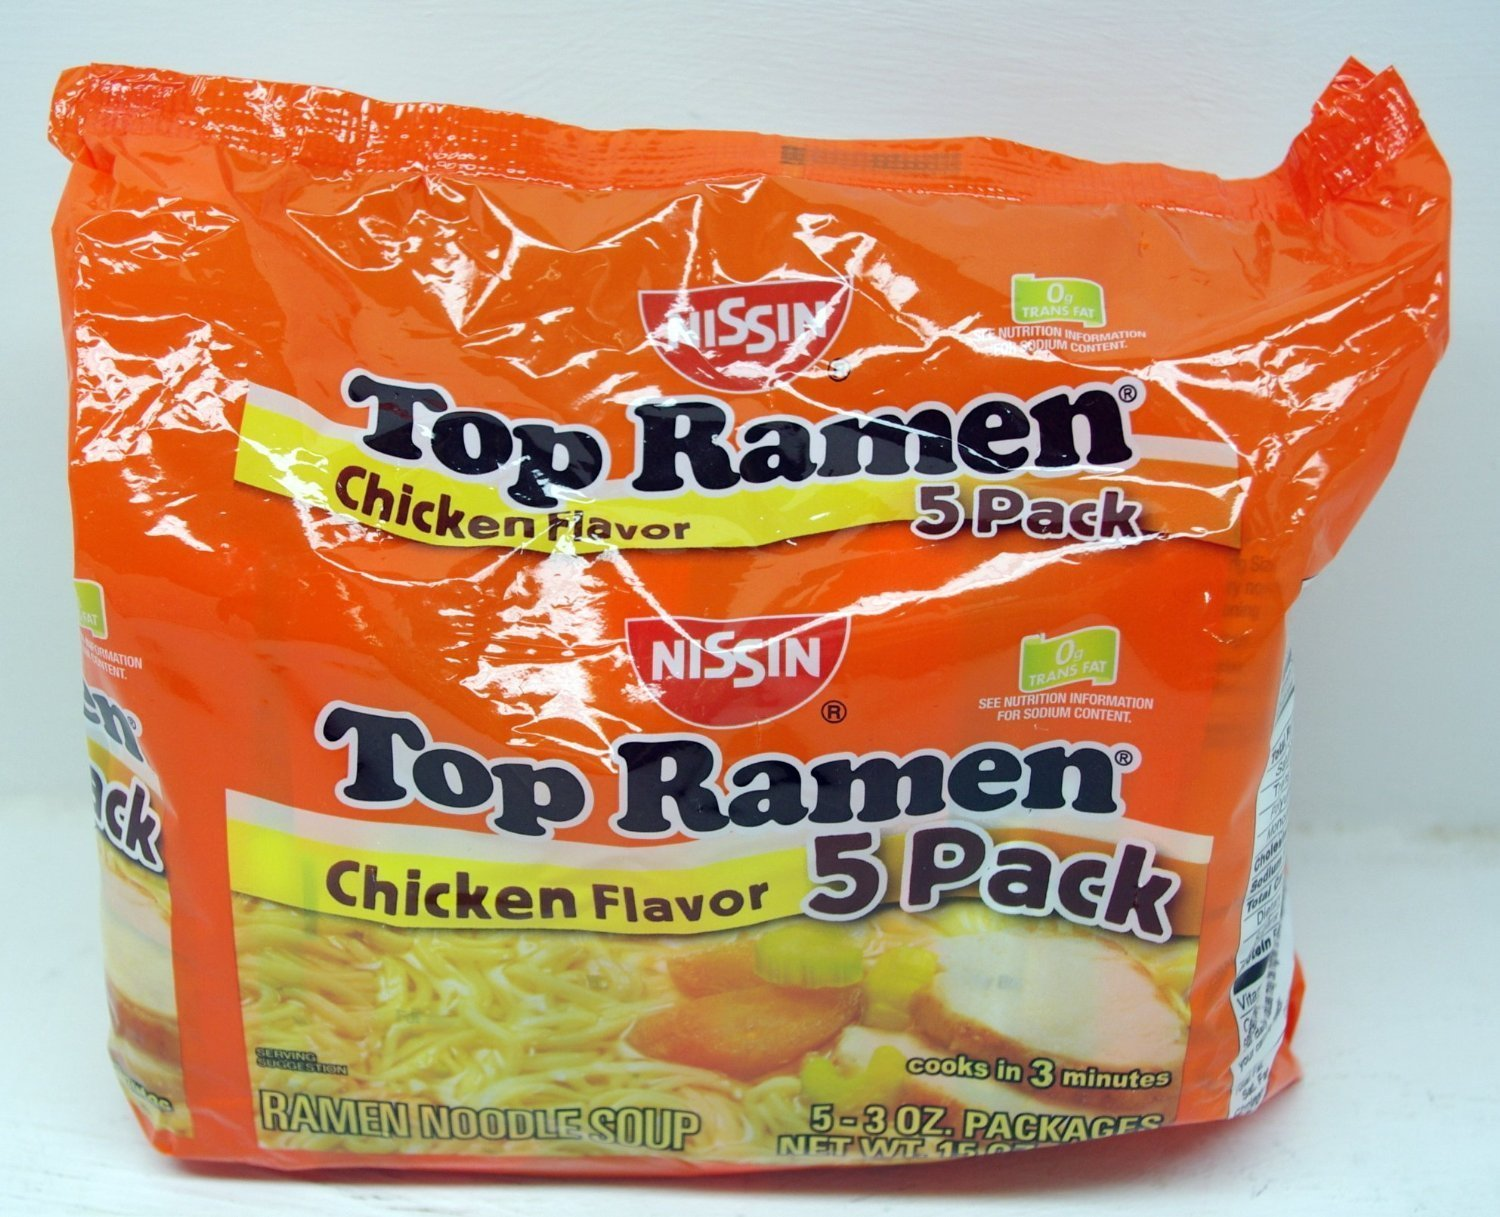 Nissin Top Ramen Noodle Soup Chicken Flavor 3 Ounce Packages - 15 Packs by Nissin Top Ramen